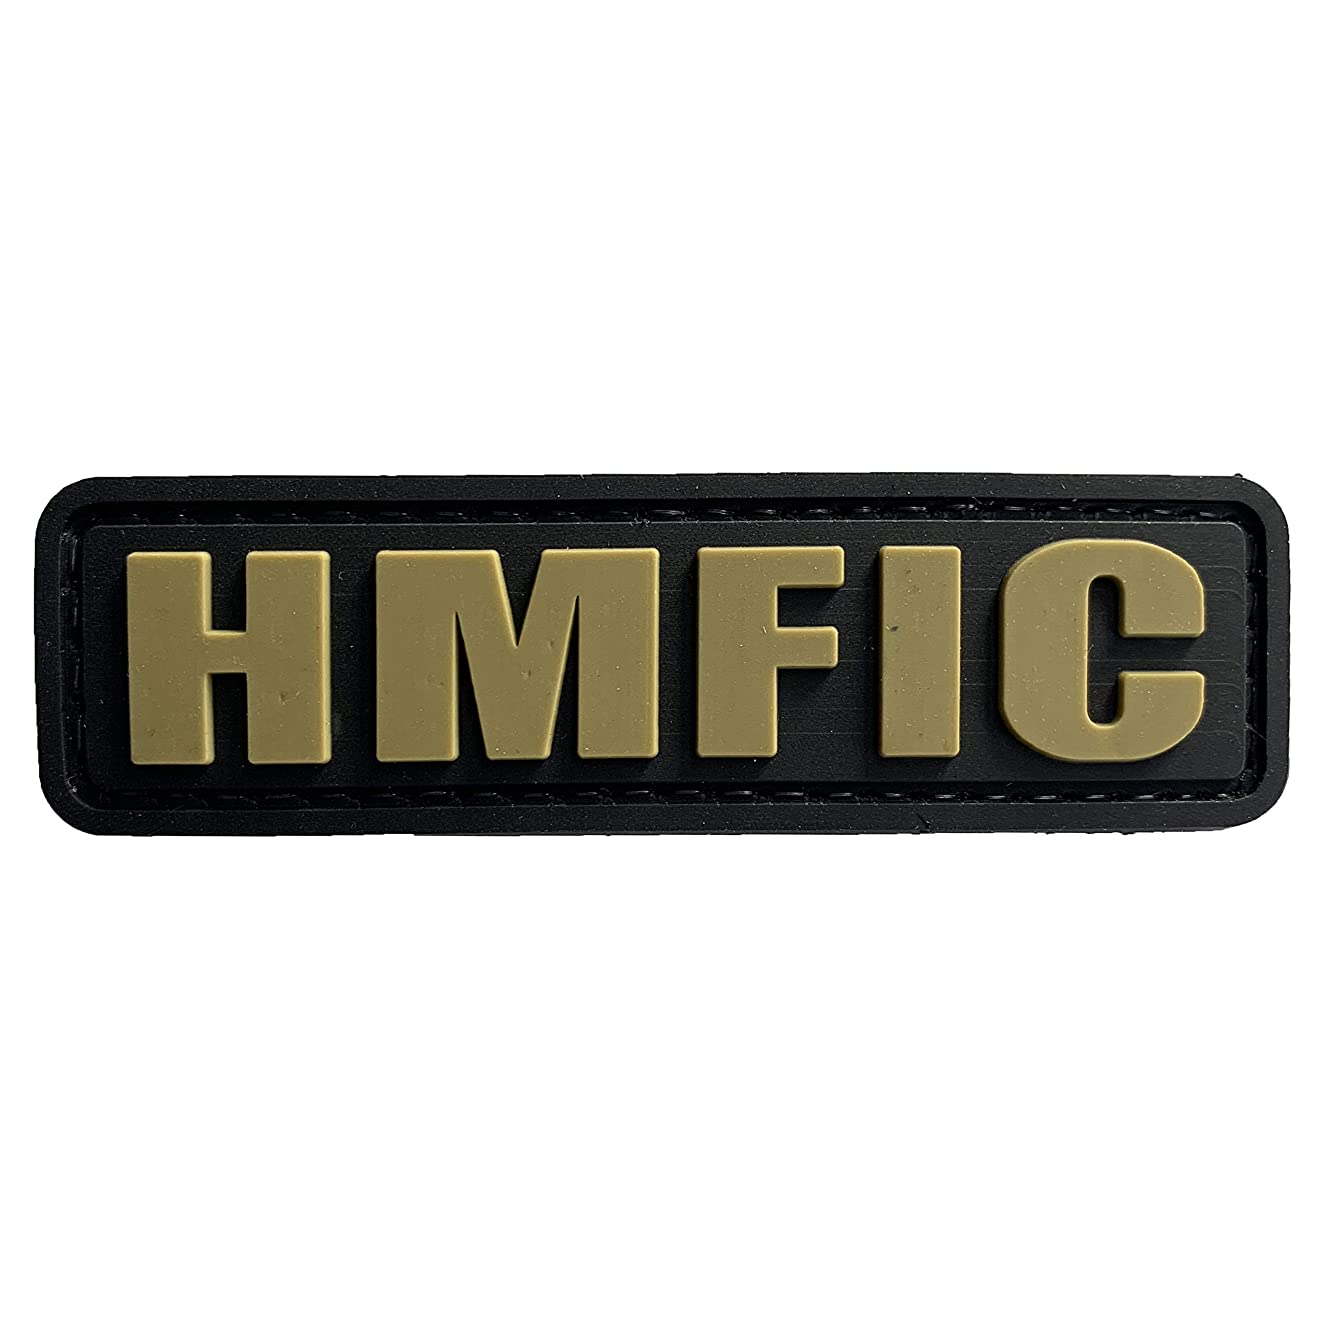 HMFIC Patch Hook Fastener Backing Head Mother Fker in Charge 3.15''x1'' PVC Morale Patch (Black and Tan)